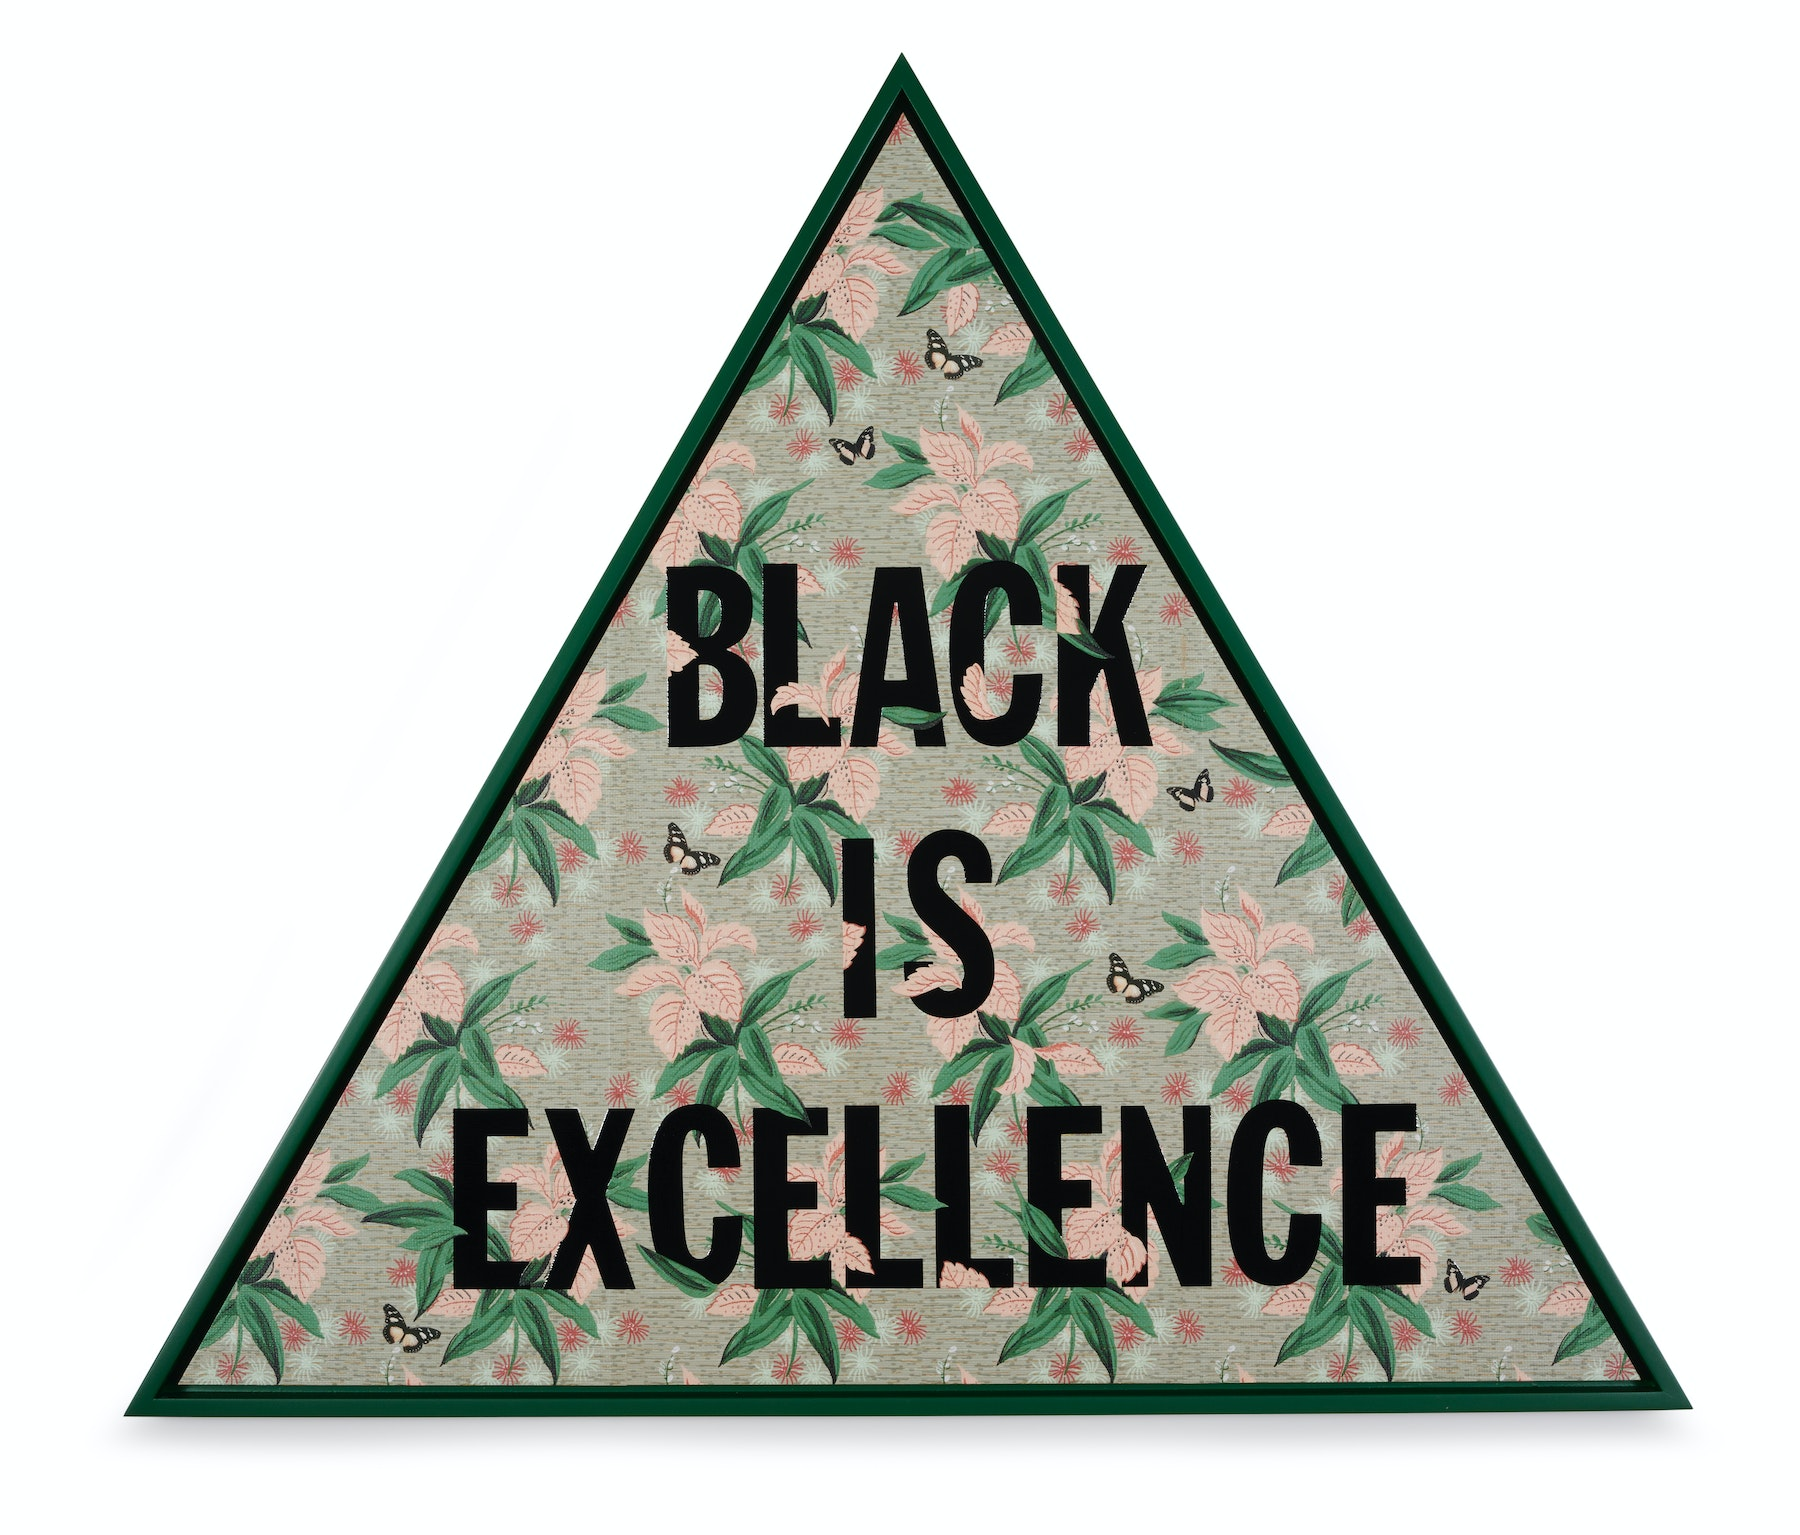 """Genevieve Gaignard """"Black Is Excellence (Thrive),"""" 2021 Mixed media on panel 41 ¹⁄₂"""" x 48"""" [HxW] (105.41 x 121.92 cm) Inventory #GEN342 Courtesy of the artist and Vielmetter Los Angeles Photo credit: Thomas Clark"""